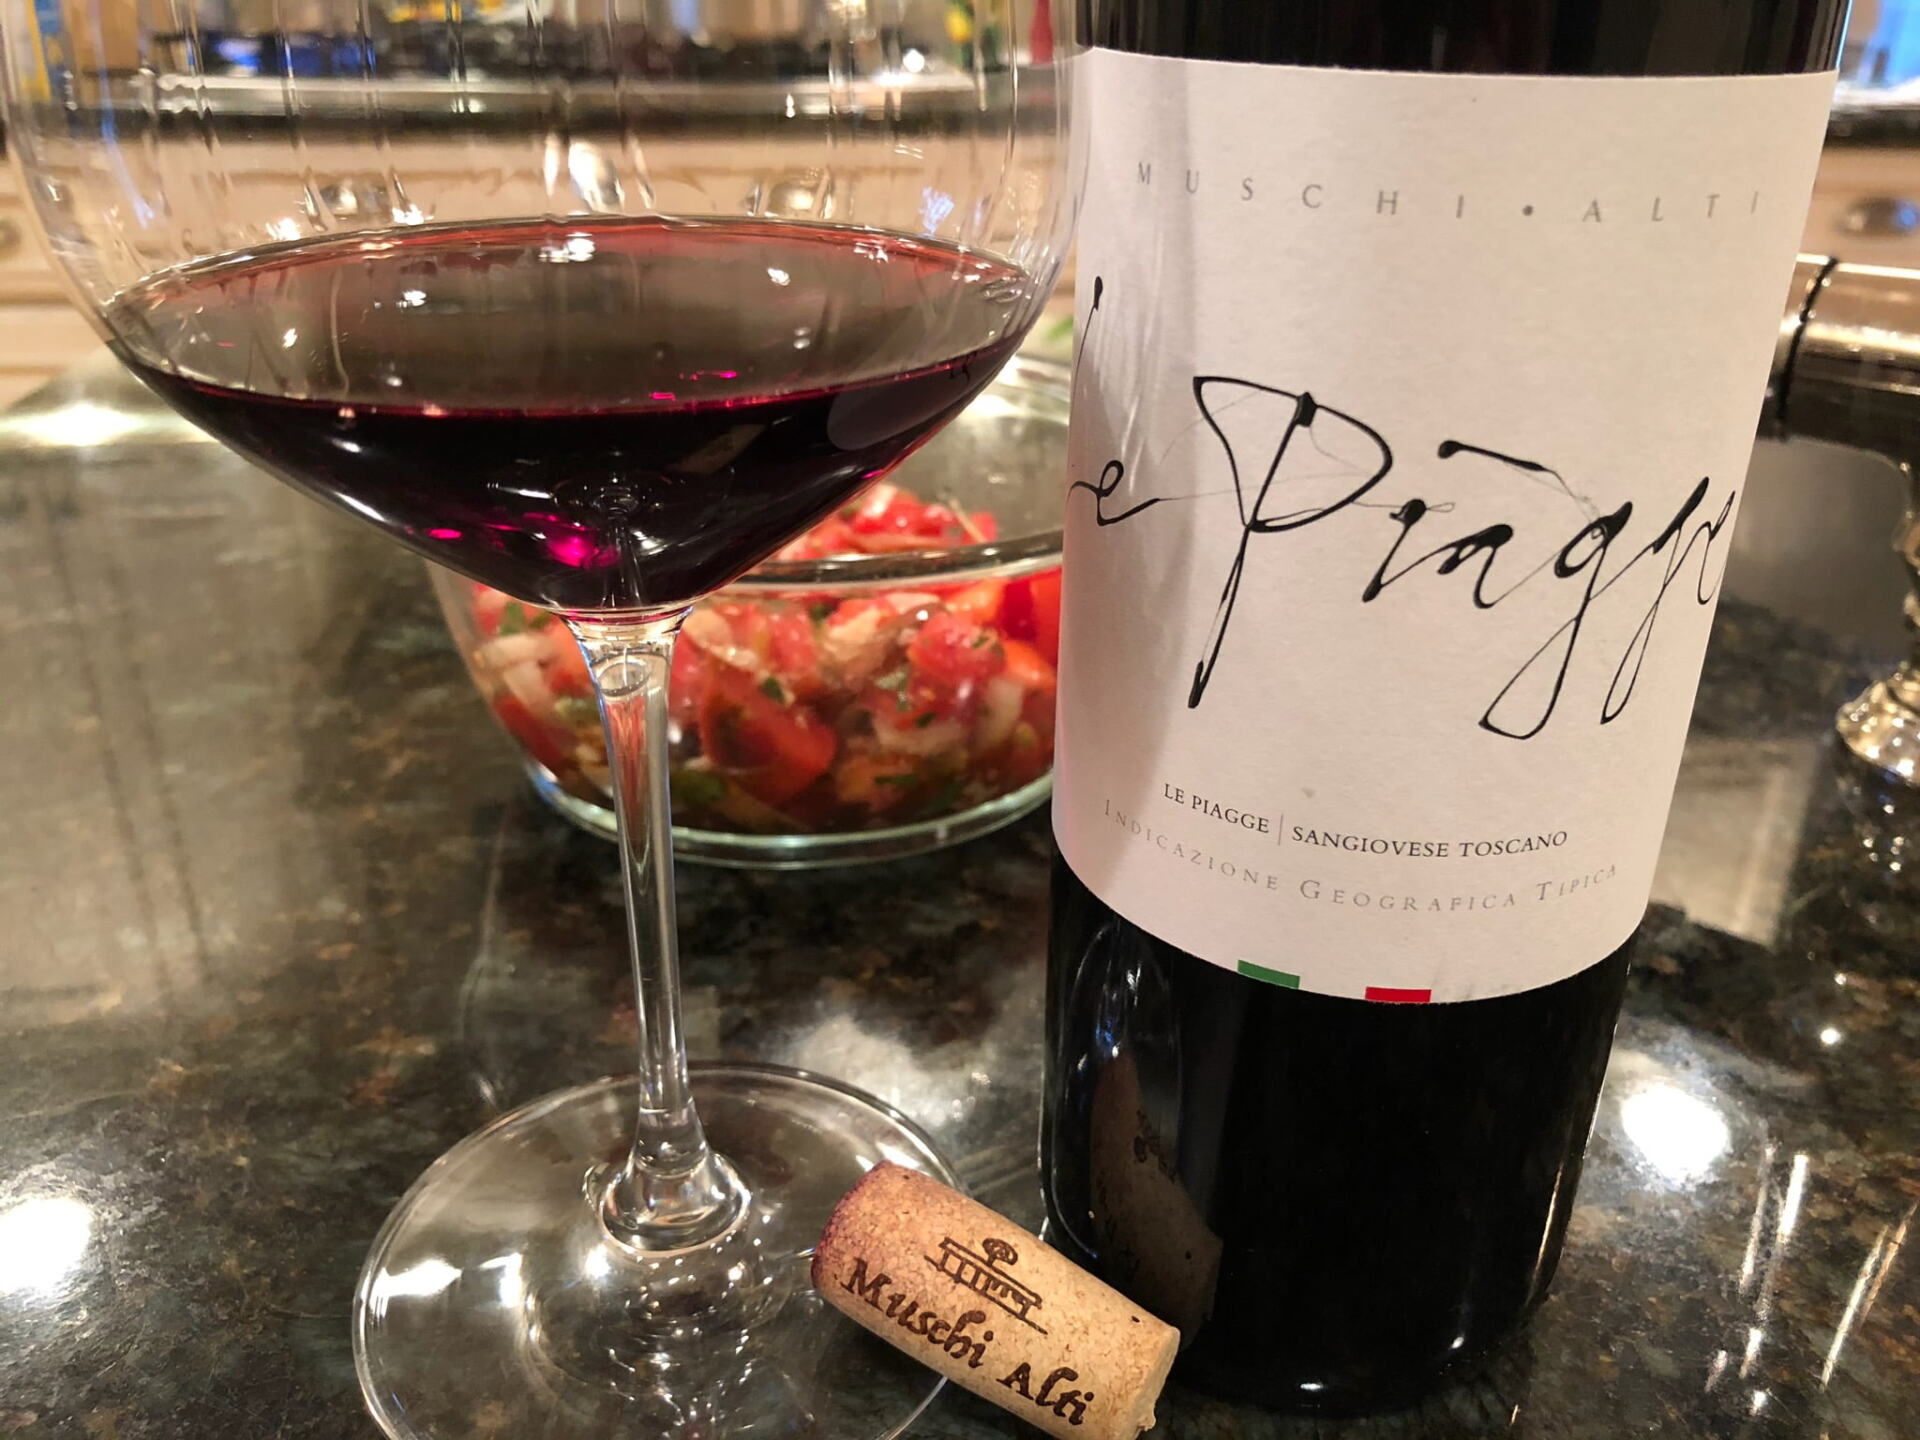 Le Piagge Sangiovese in bottle